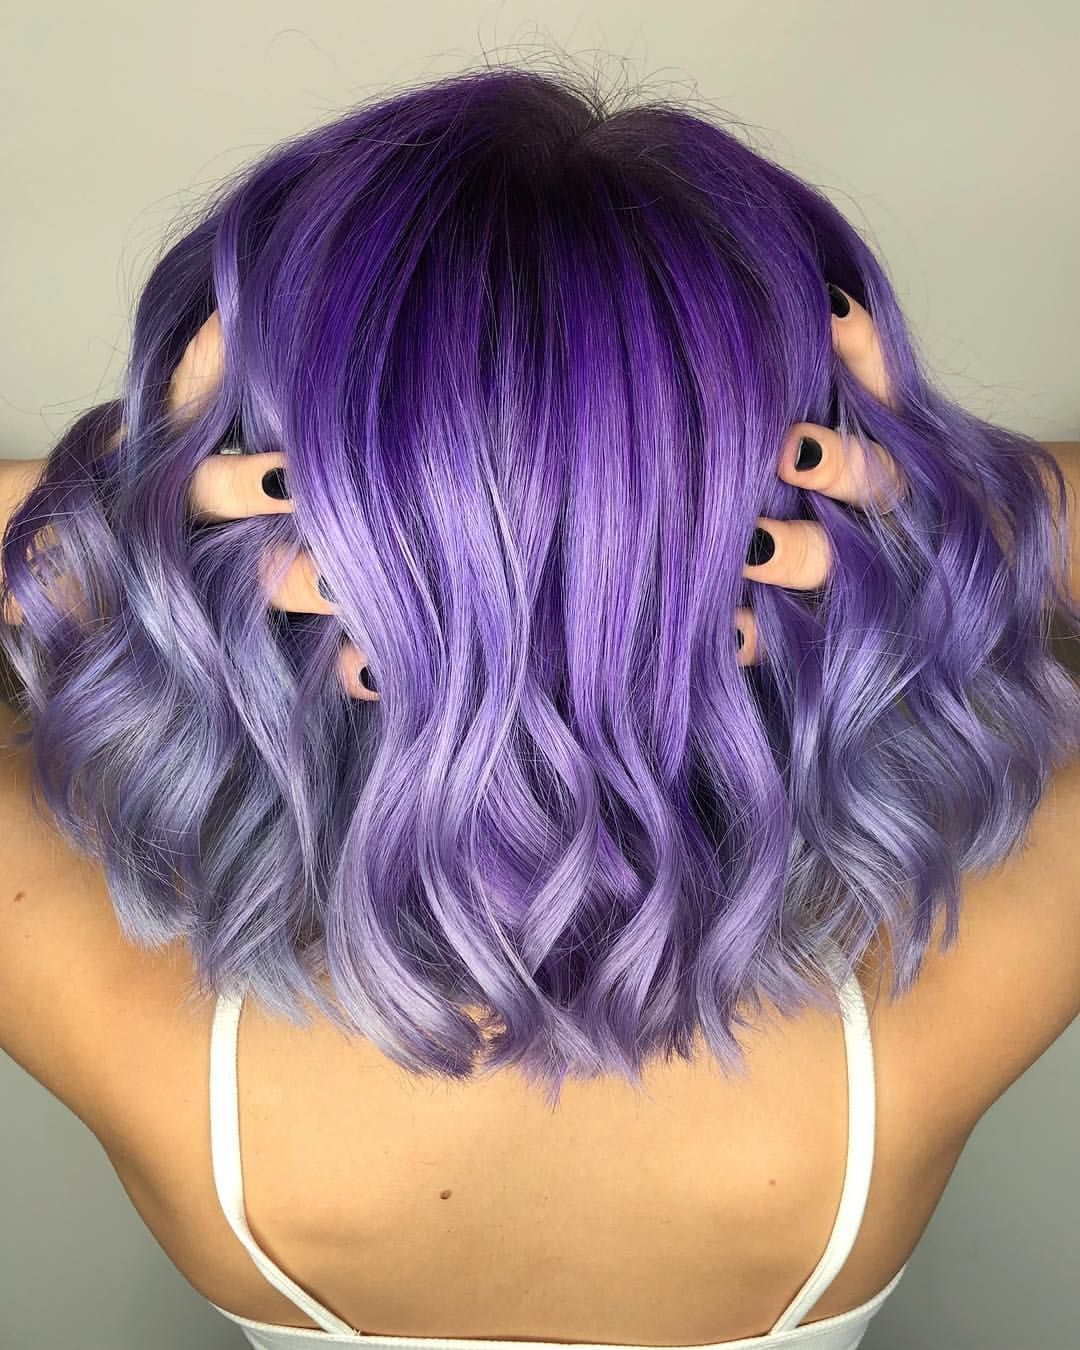 63 Purple Hair Color Ideas To Swoon Over Violet Purple Hair Dye Tips: I Legit Have The Best Clients. Let Me Just Forewarn Anyone